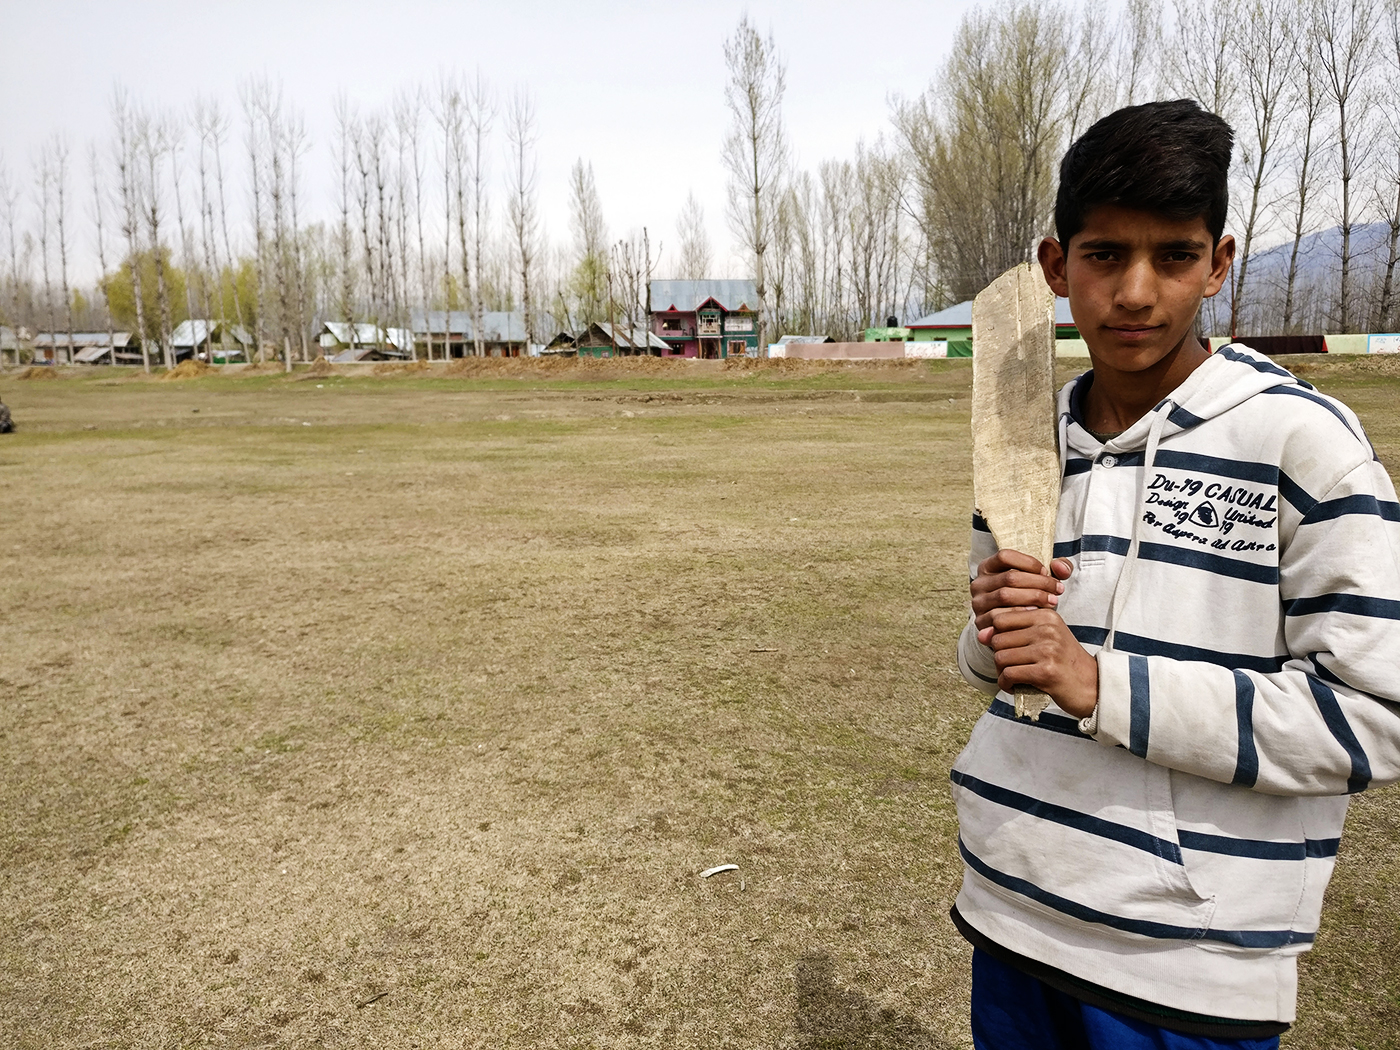 Manzoor's youngest brother, pictured holding a typical handmade bat from Sumbal